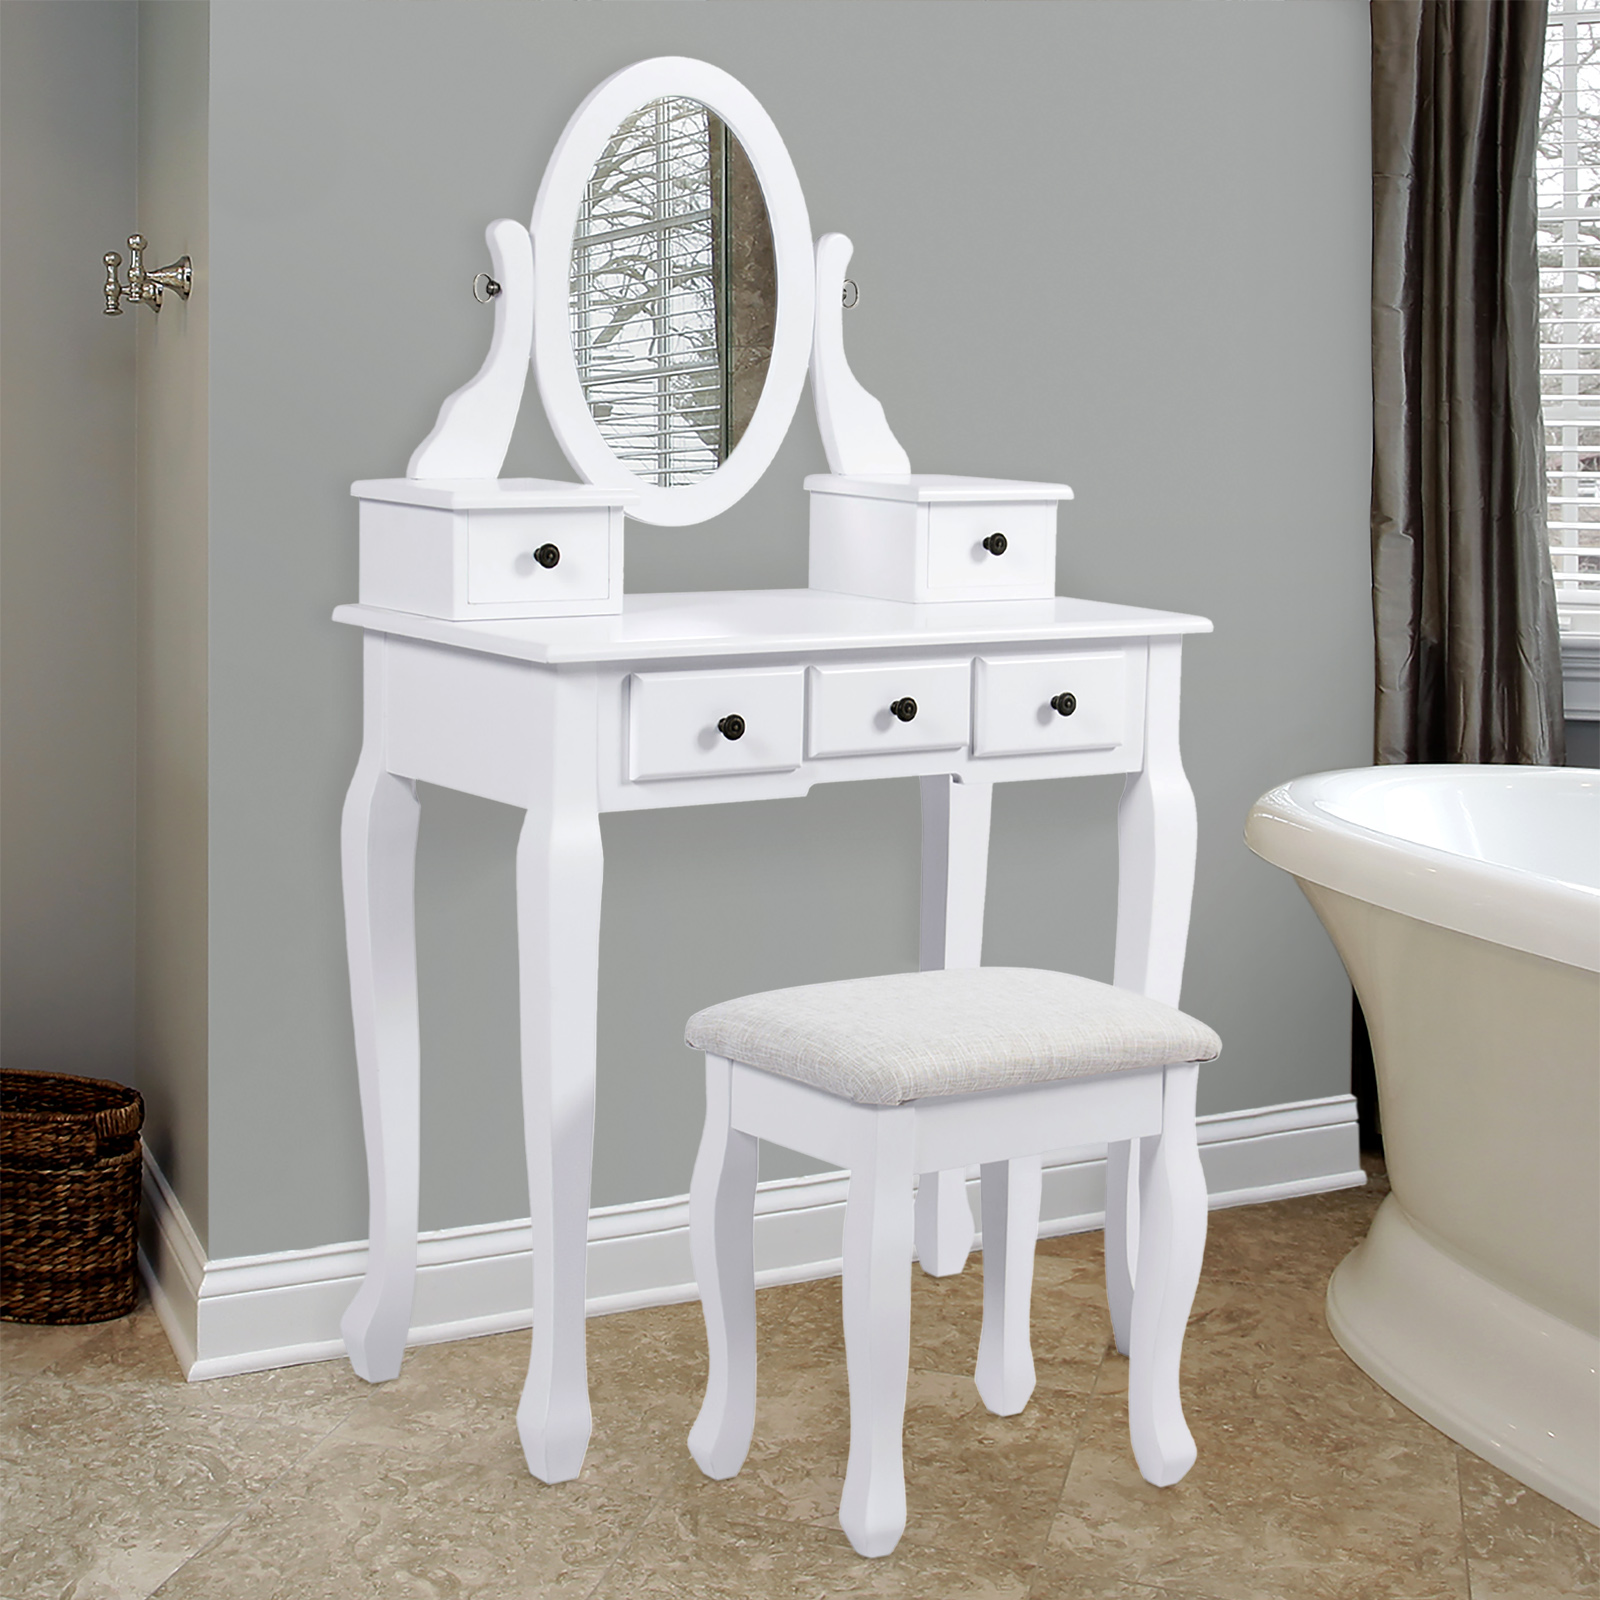 Bathroom Vanity Table Jewelry Makeup Desk Hair Dressing Organizer Bench  Drawer White